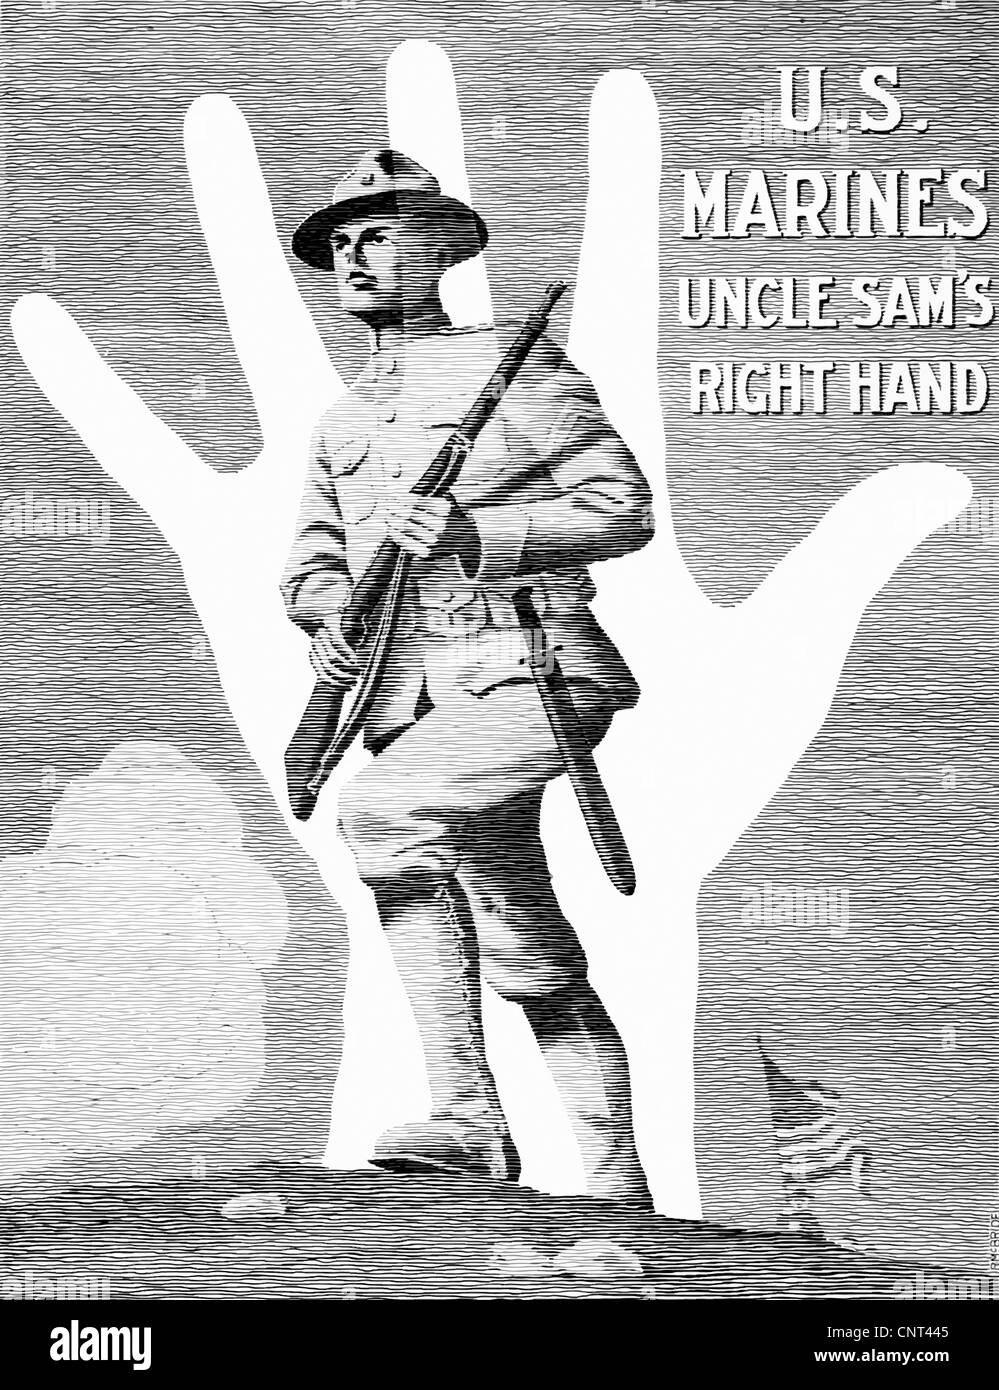 Vintage World War One poster showing a Marine soldier charging a hill, through the outline of a right hand. - Stock Image